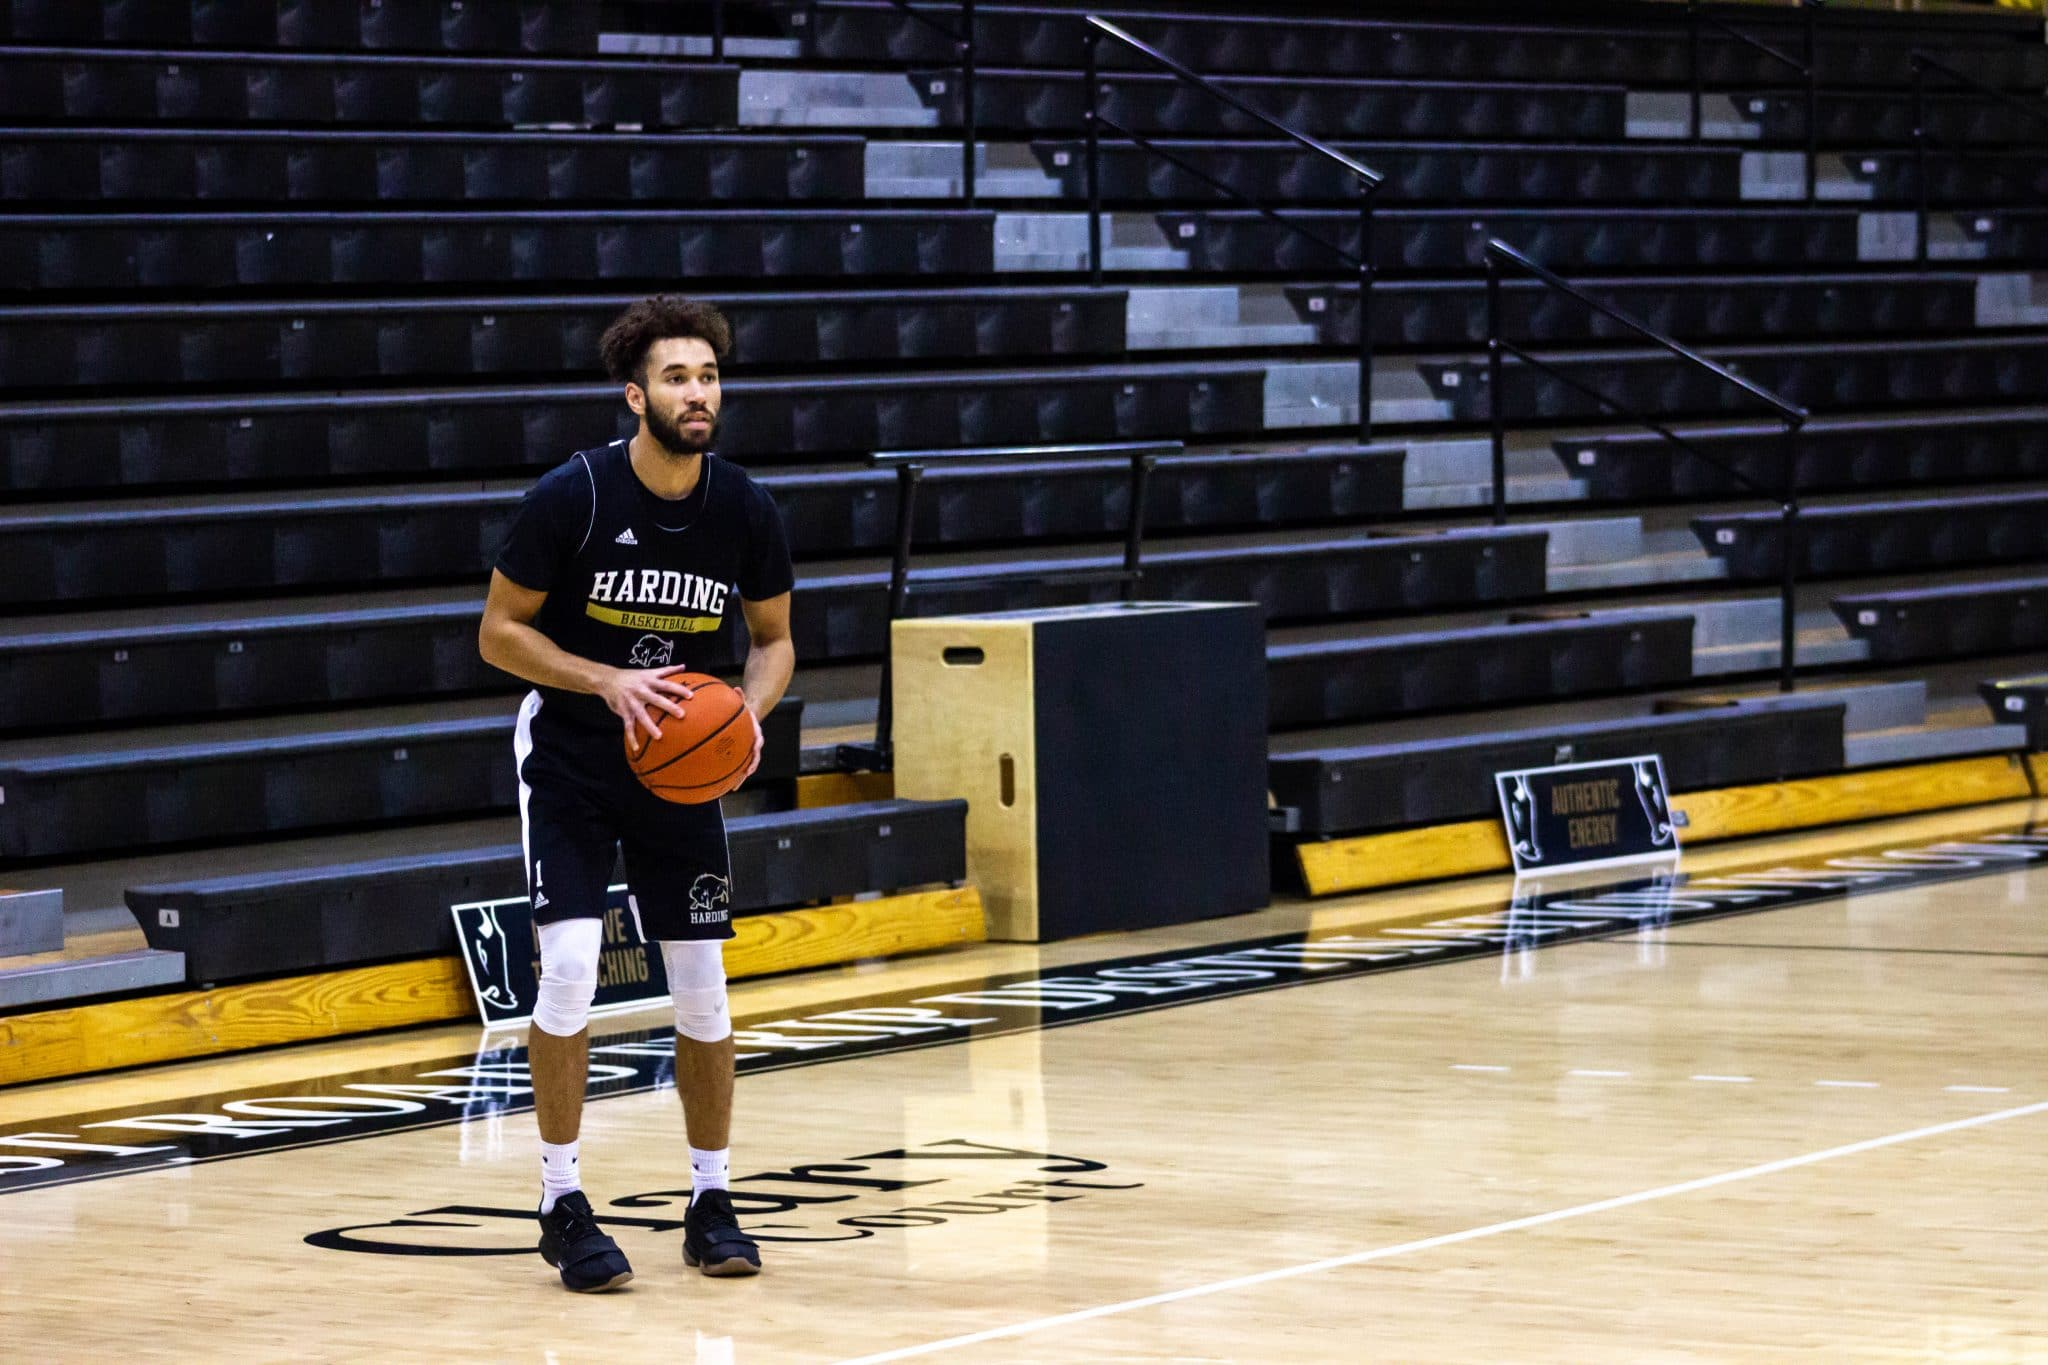 New faces prepared to lead Bisons basketball   The Bison